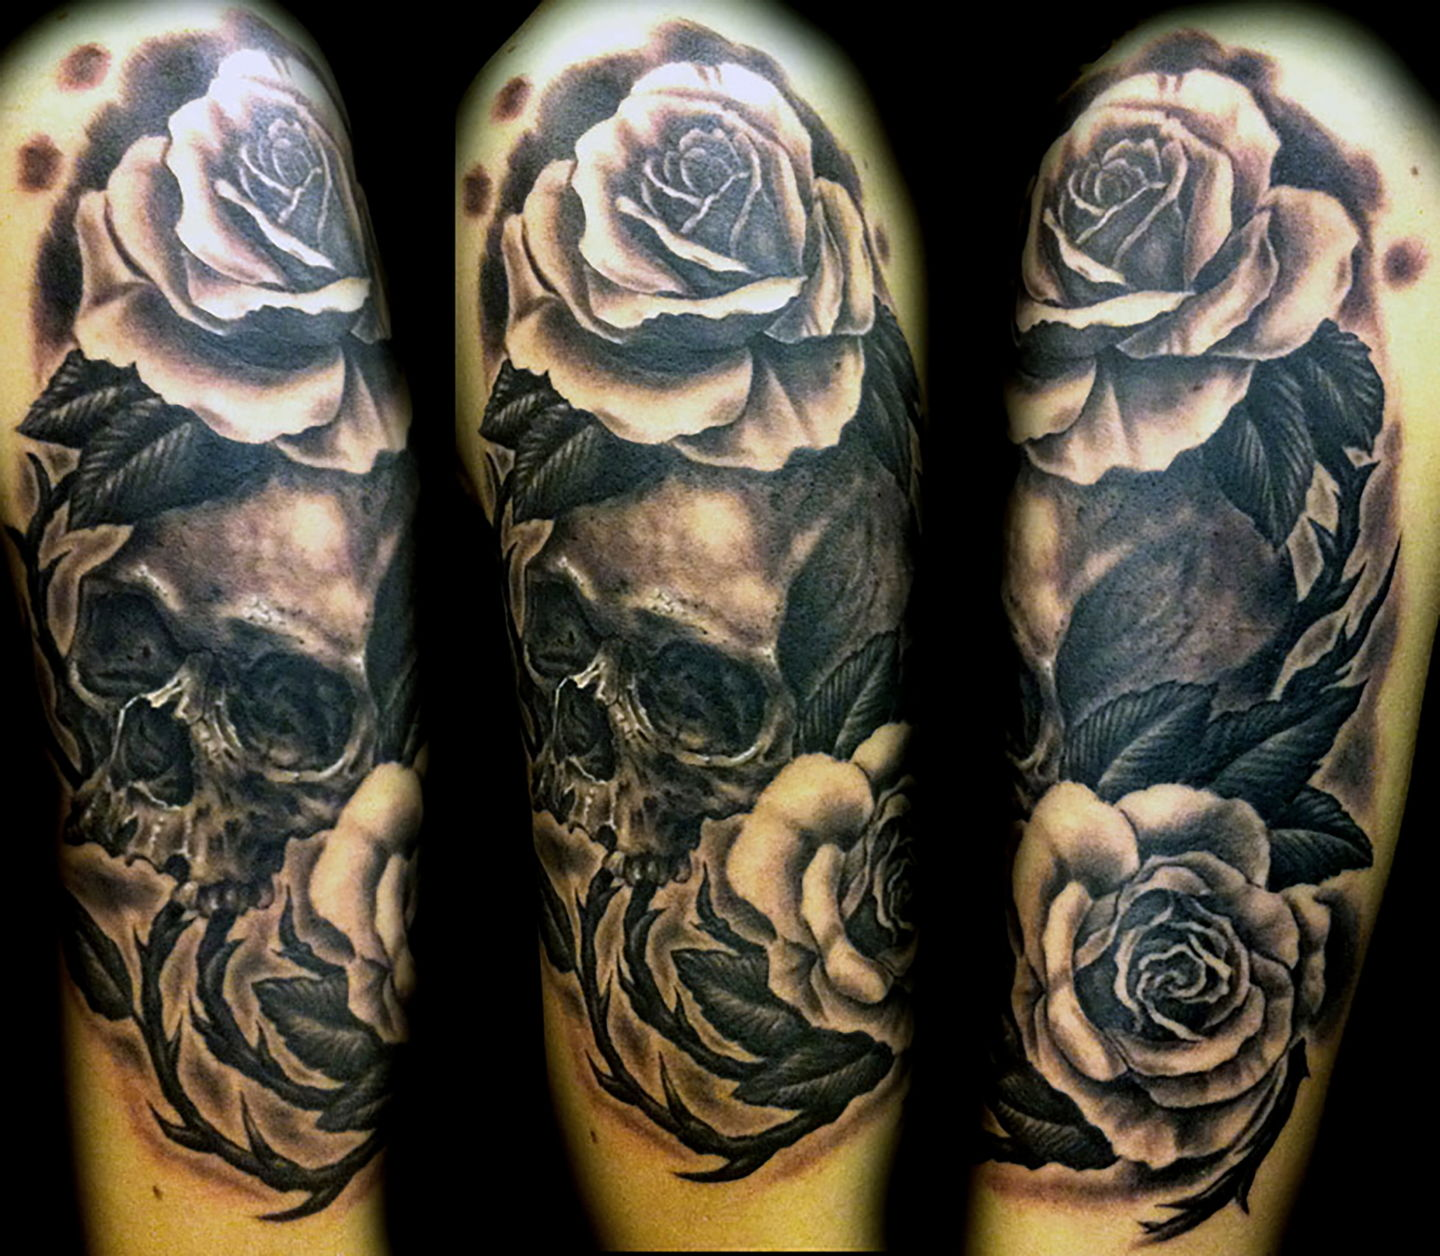 Las-vegas-tattoo-artist_joe-riley_skull-and-roses-tattoos